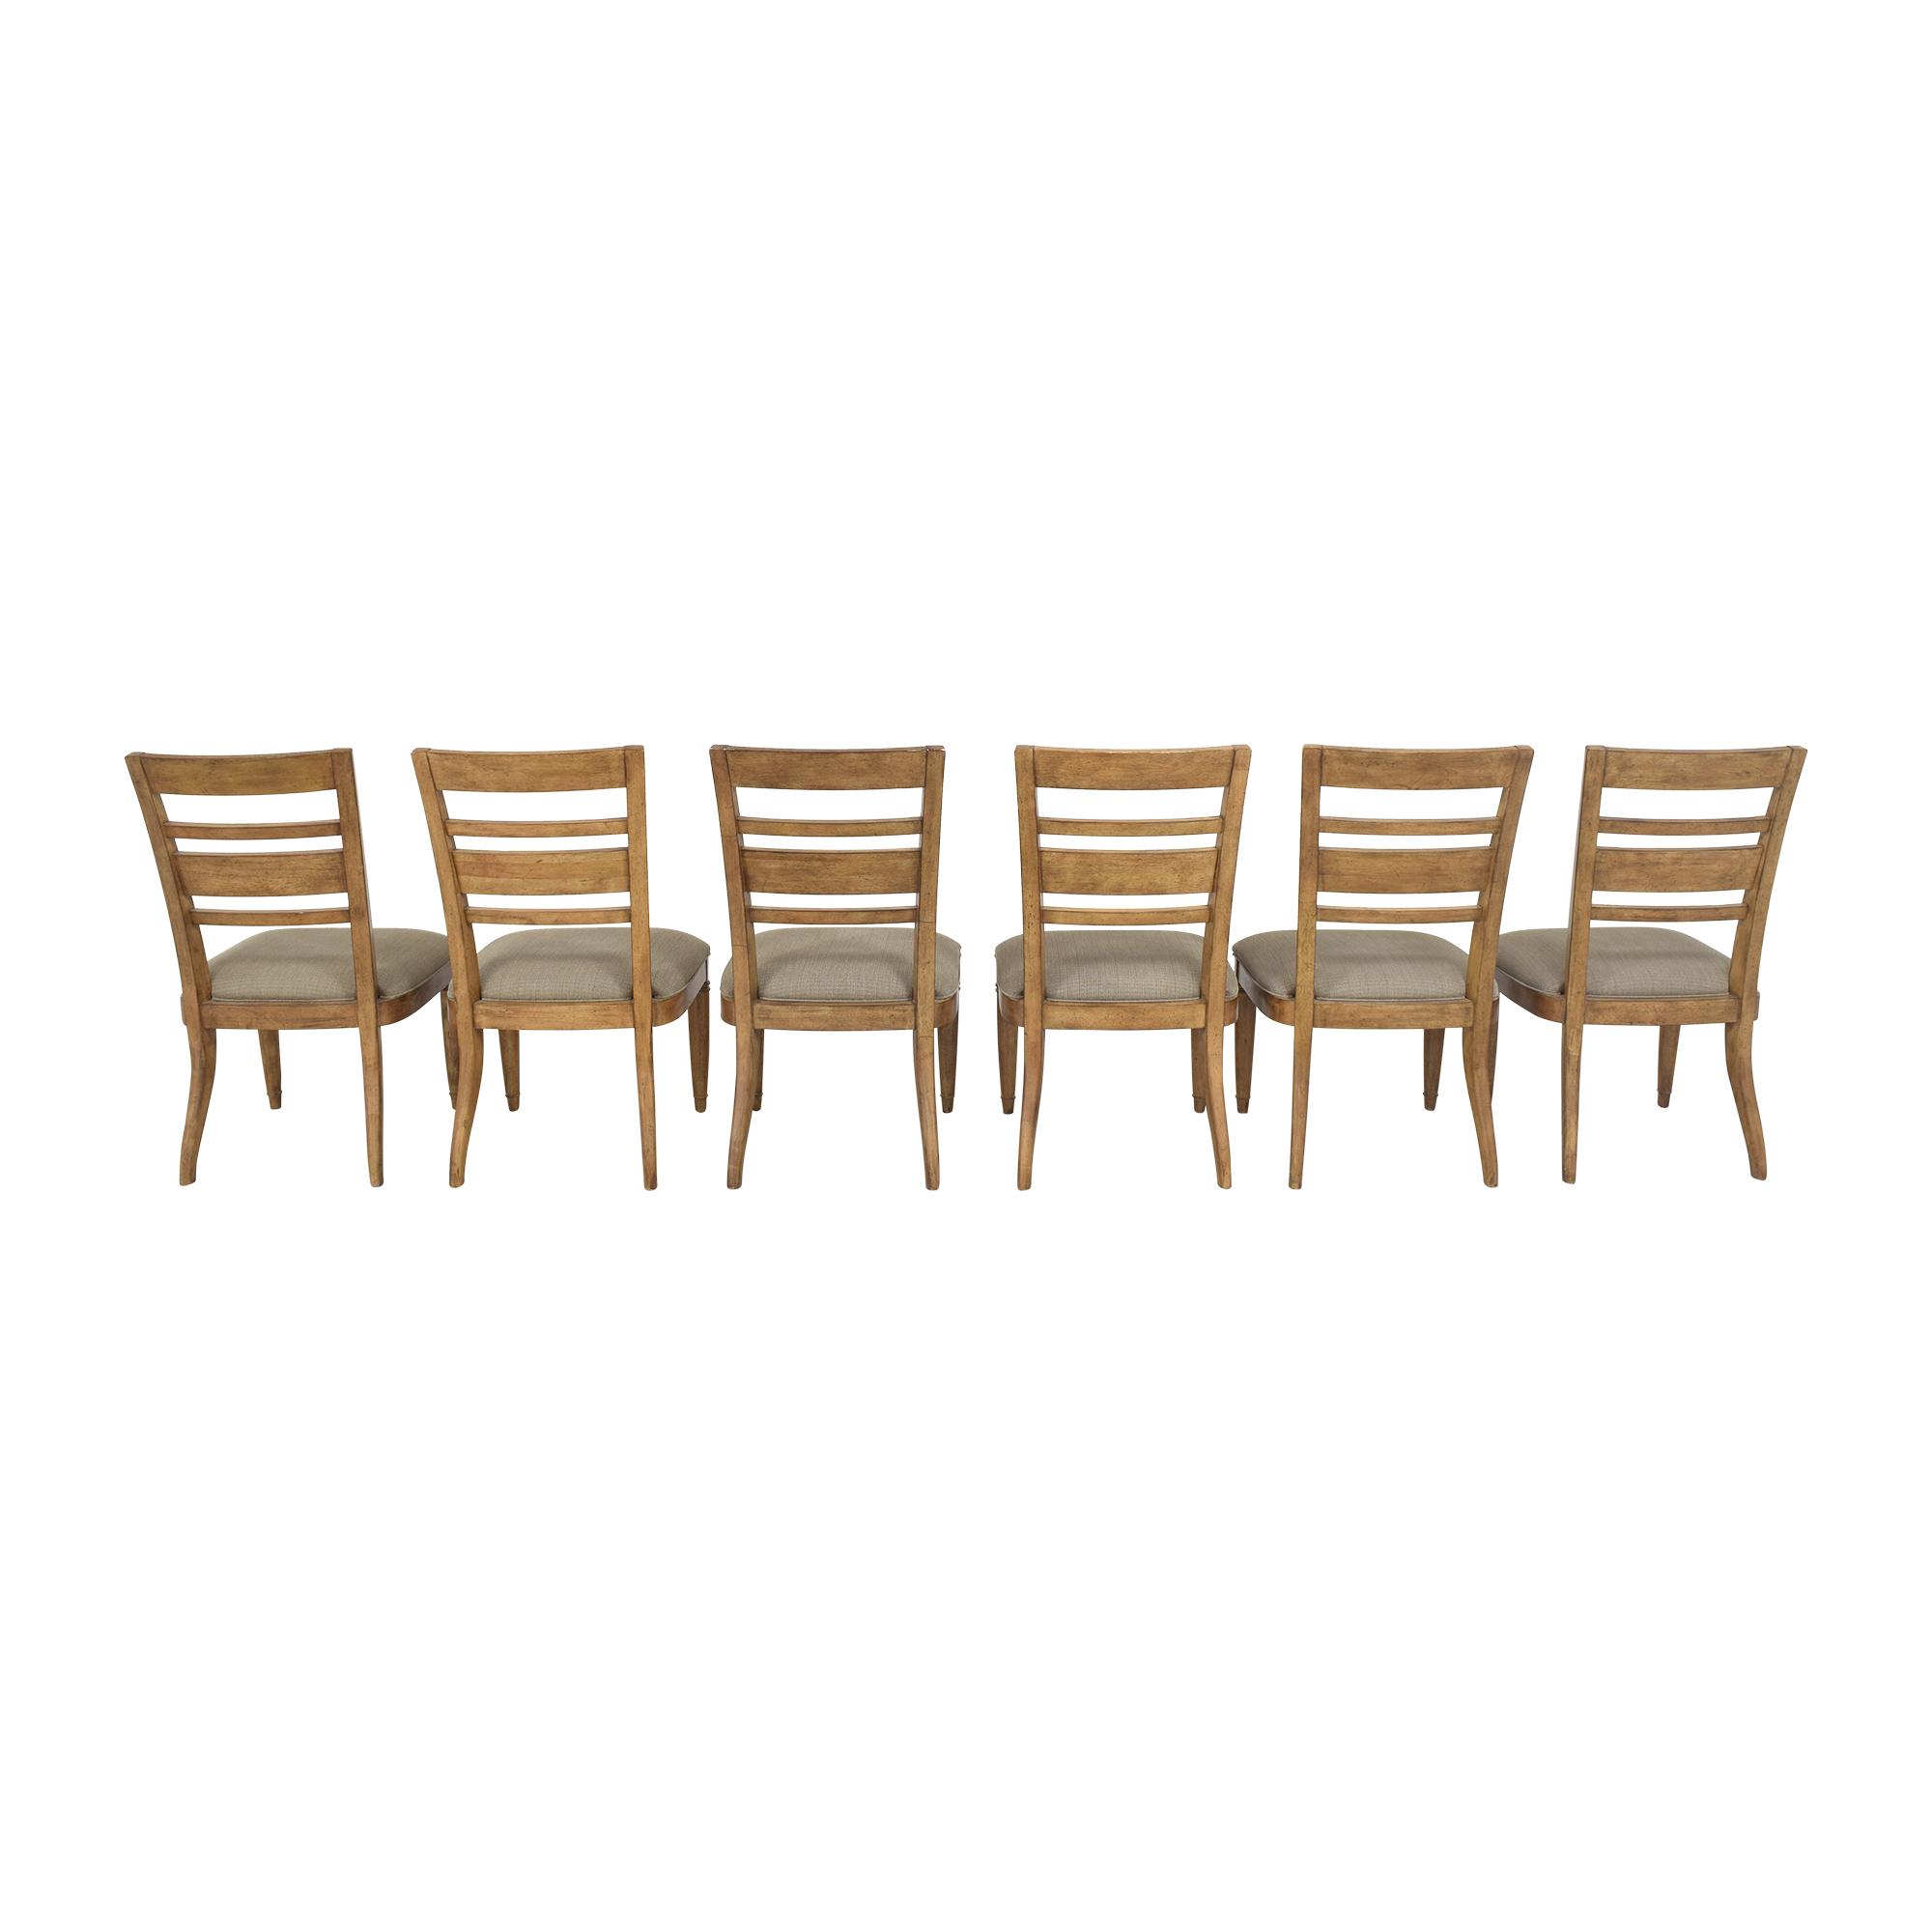 Thomasville Upholstered Dining Chairs / Chairs